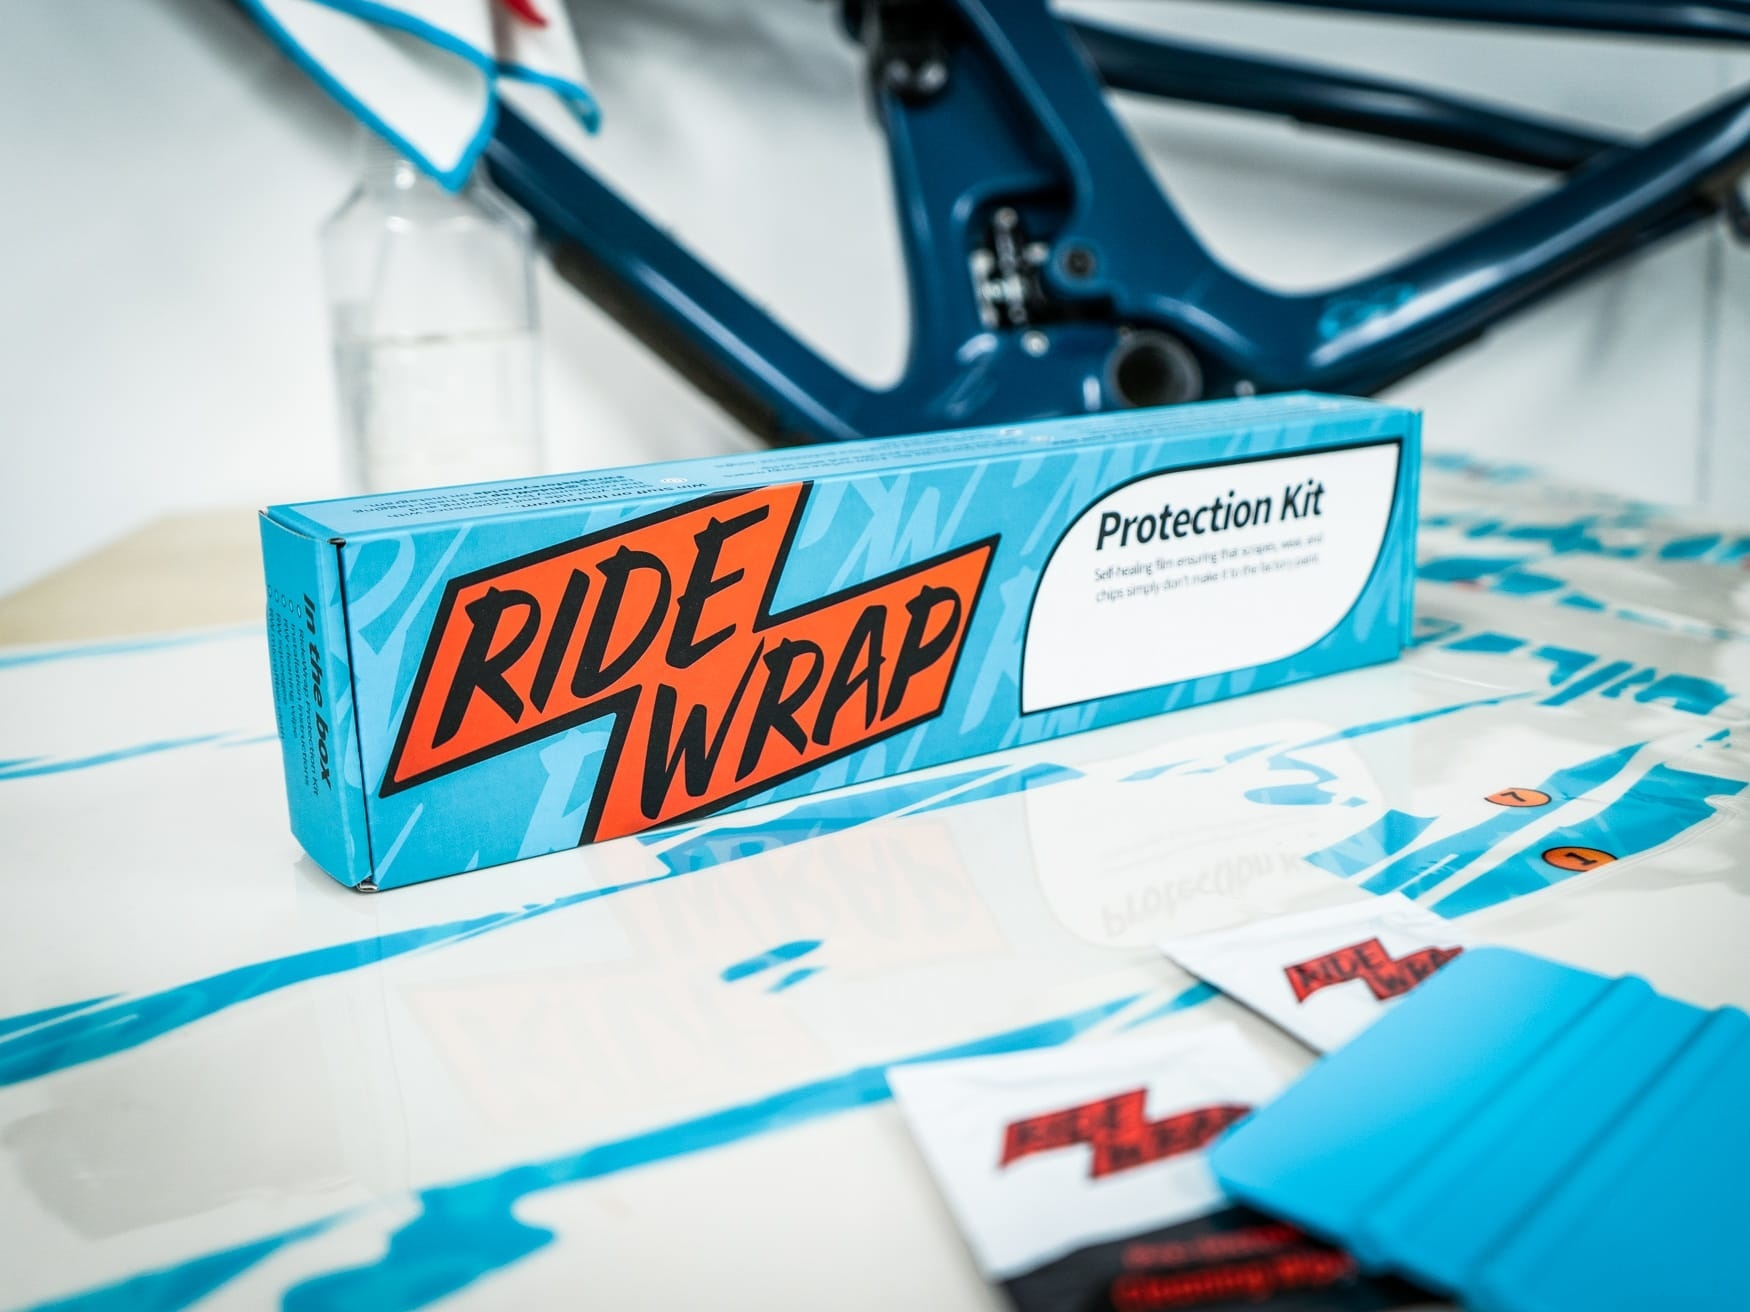 RideWrap Covered Frame Protection Kit, Collective Series, Steel MTB, Clear Matte Finish-1